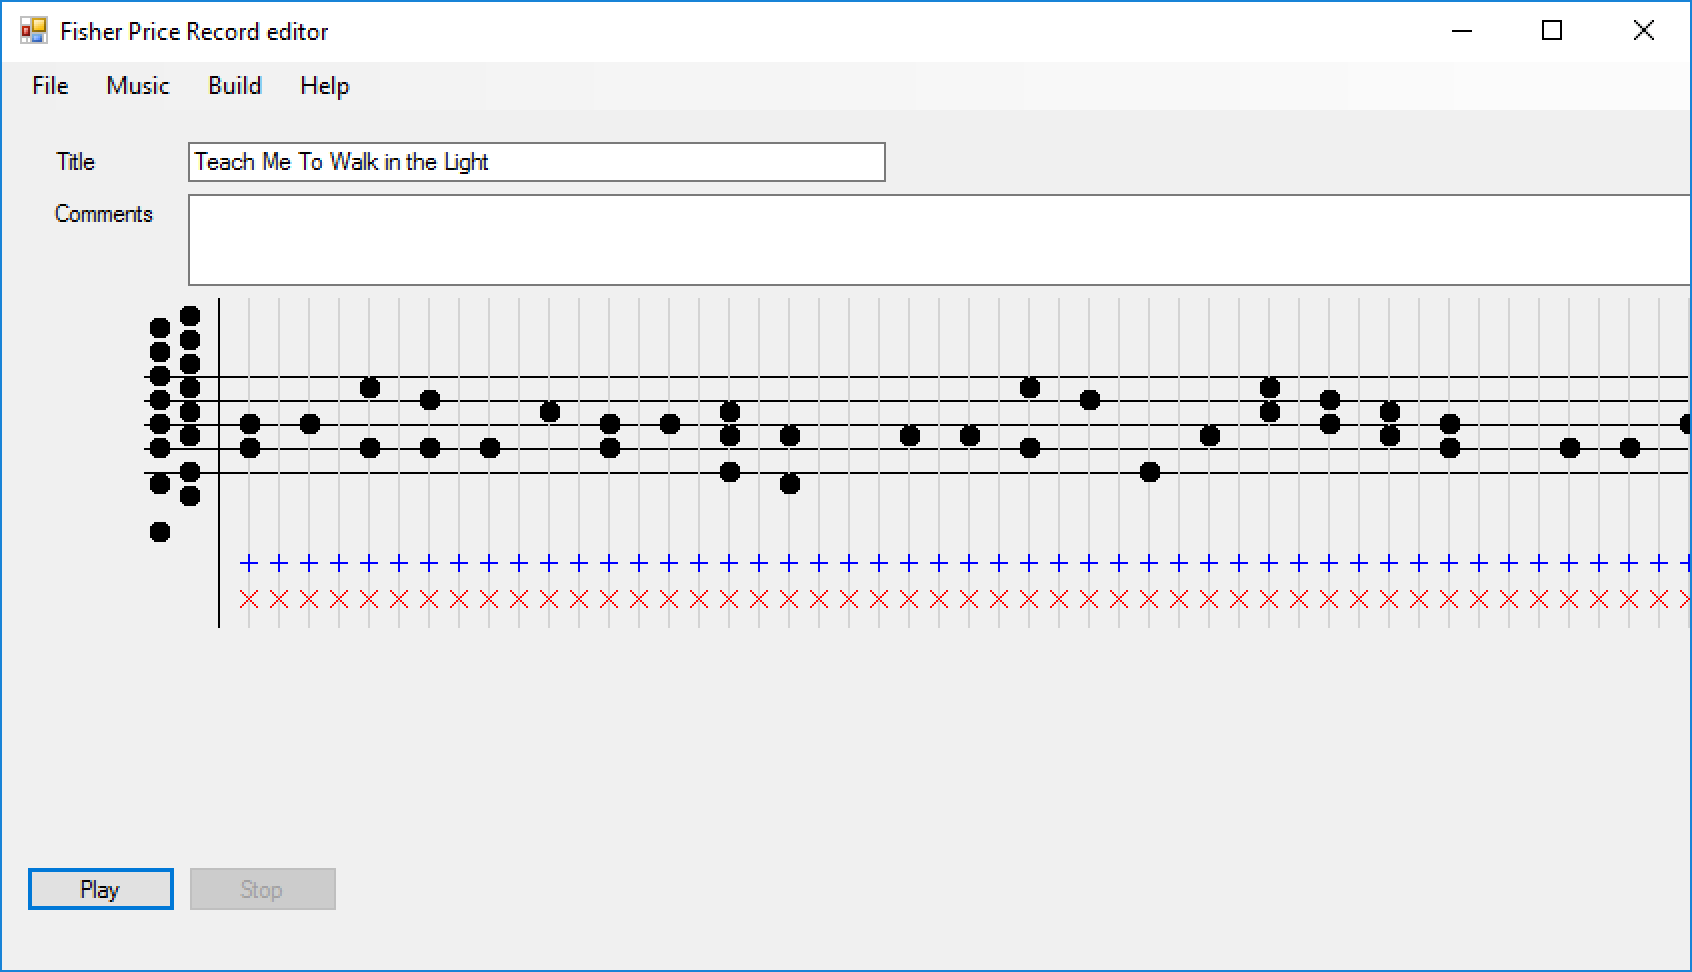 fred_transcribed_music